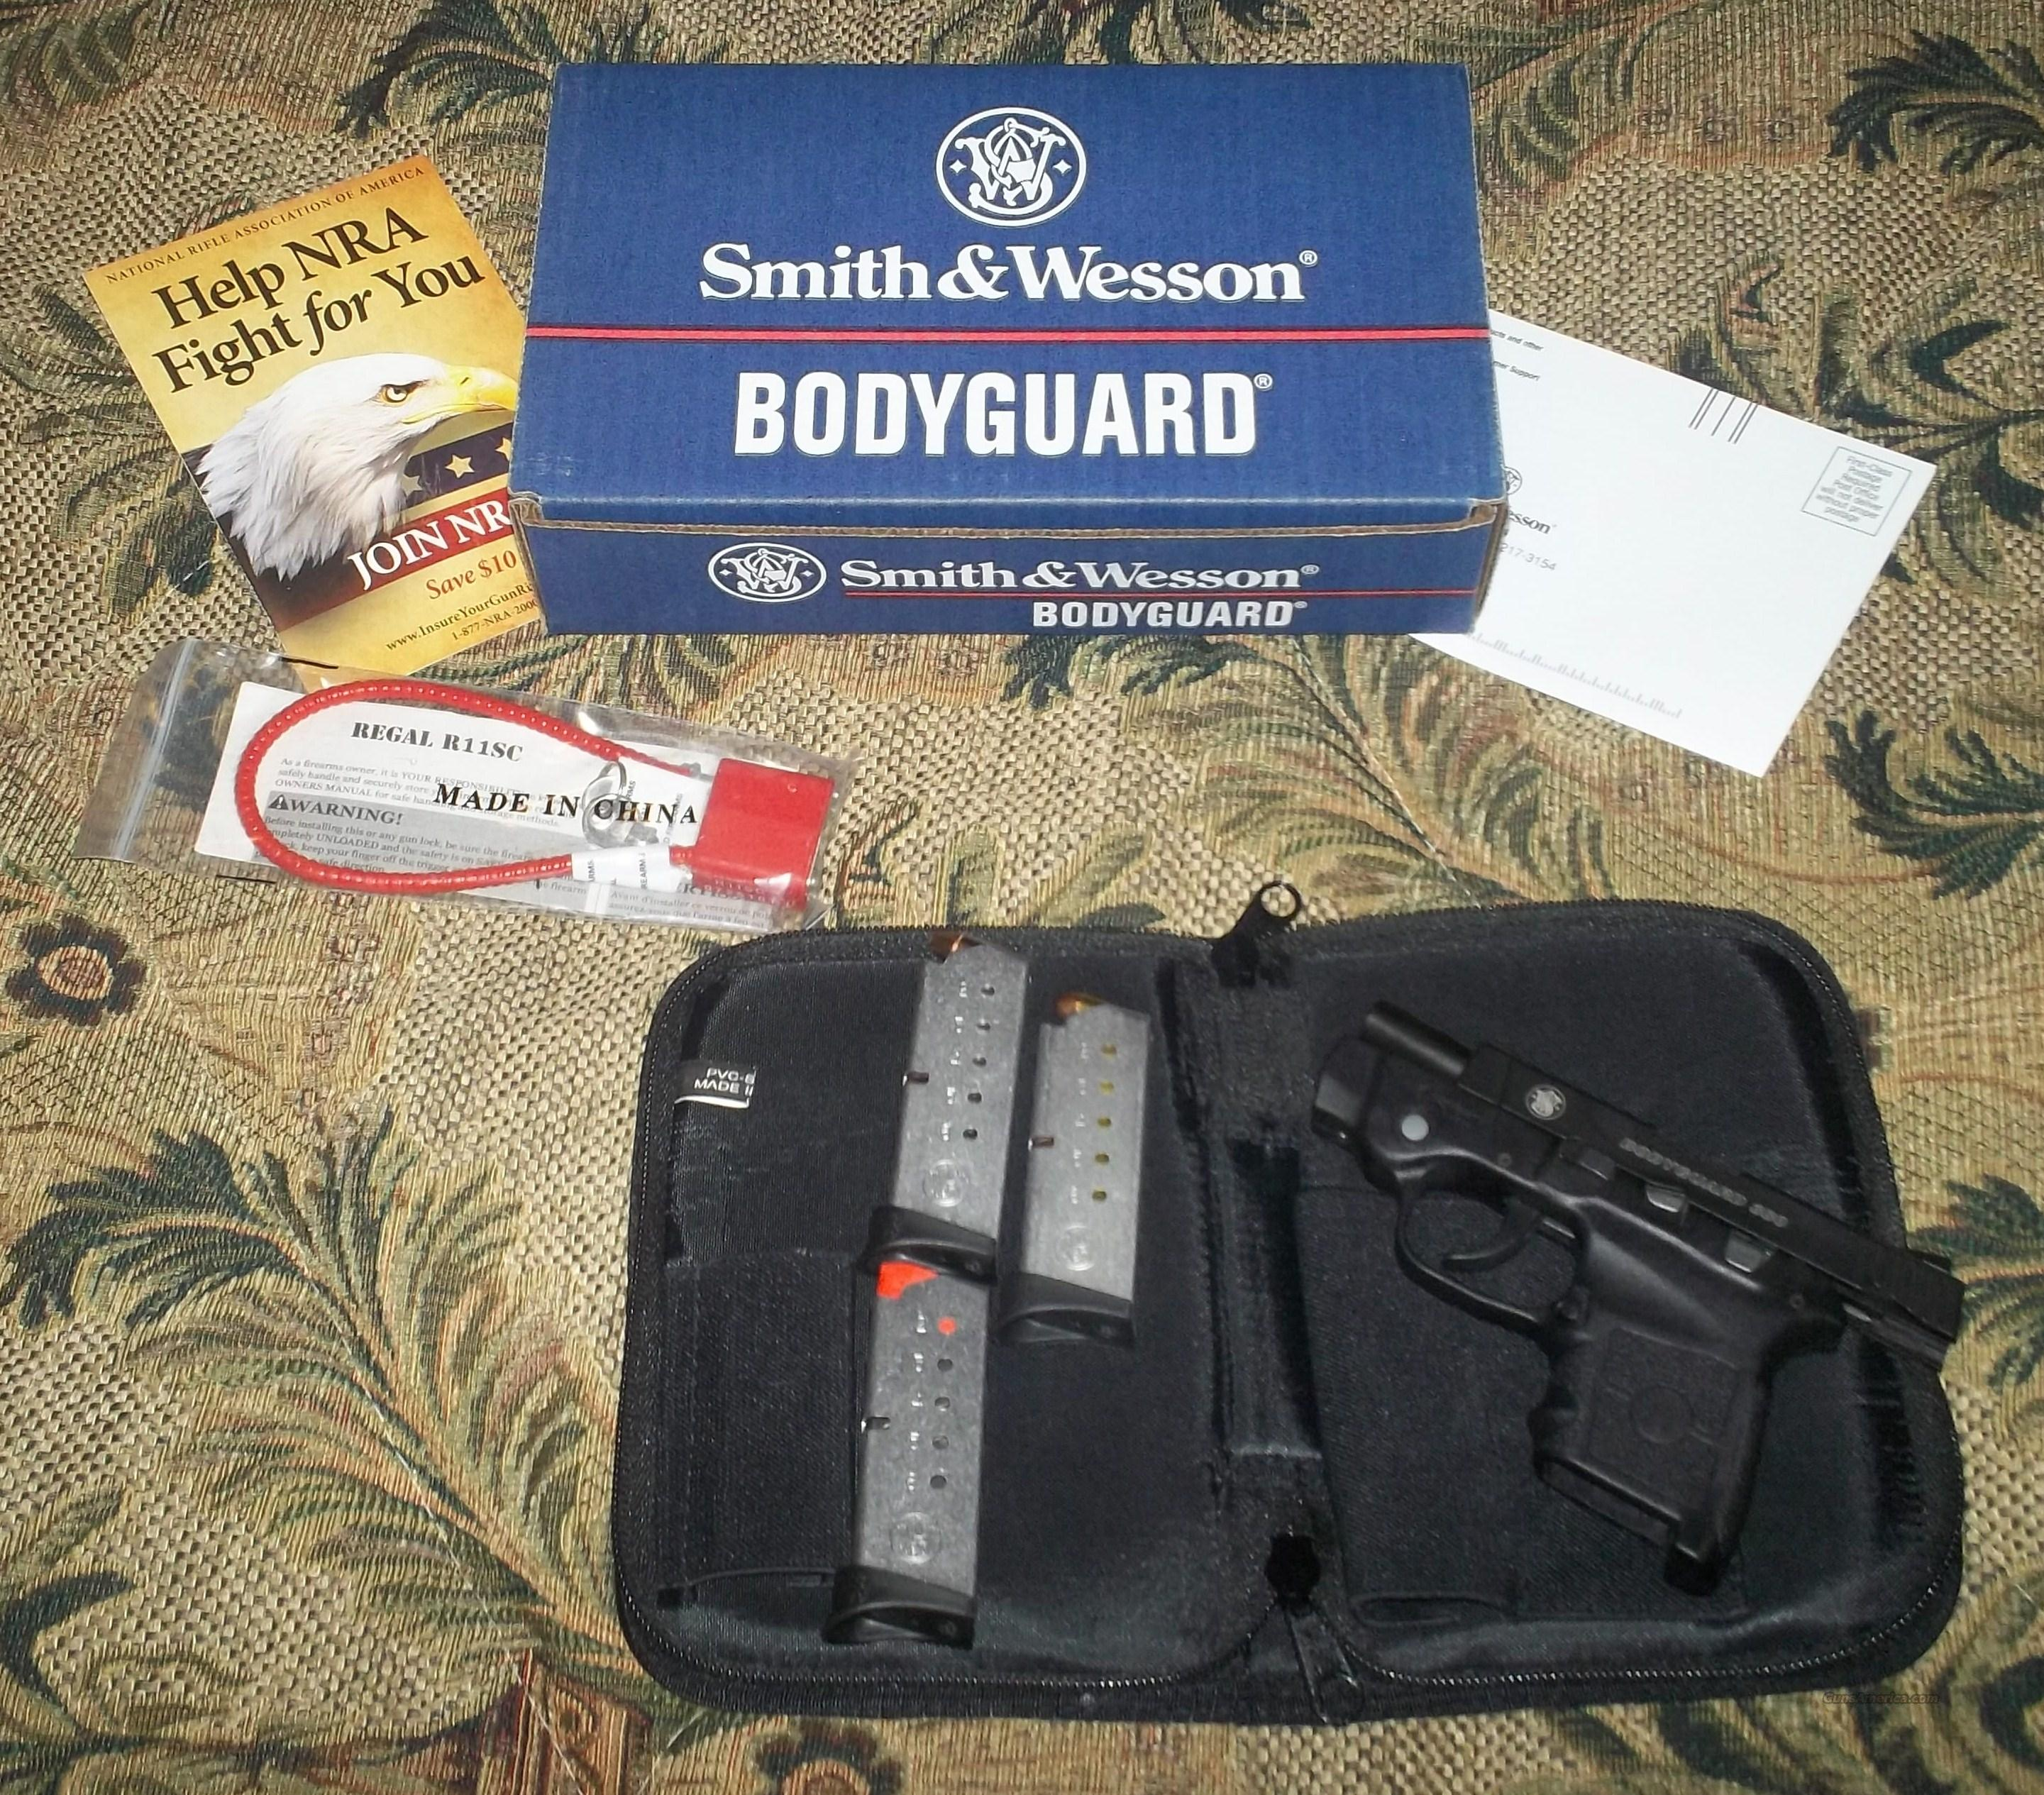 Smith and Wesson Body Guard 380 Bodyguard  Guns > Pistols > Smith & Wesson Pistols - Autos > Polymer Frame